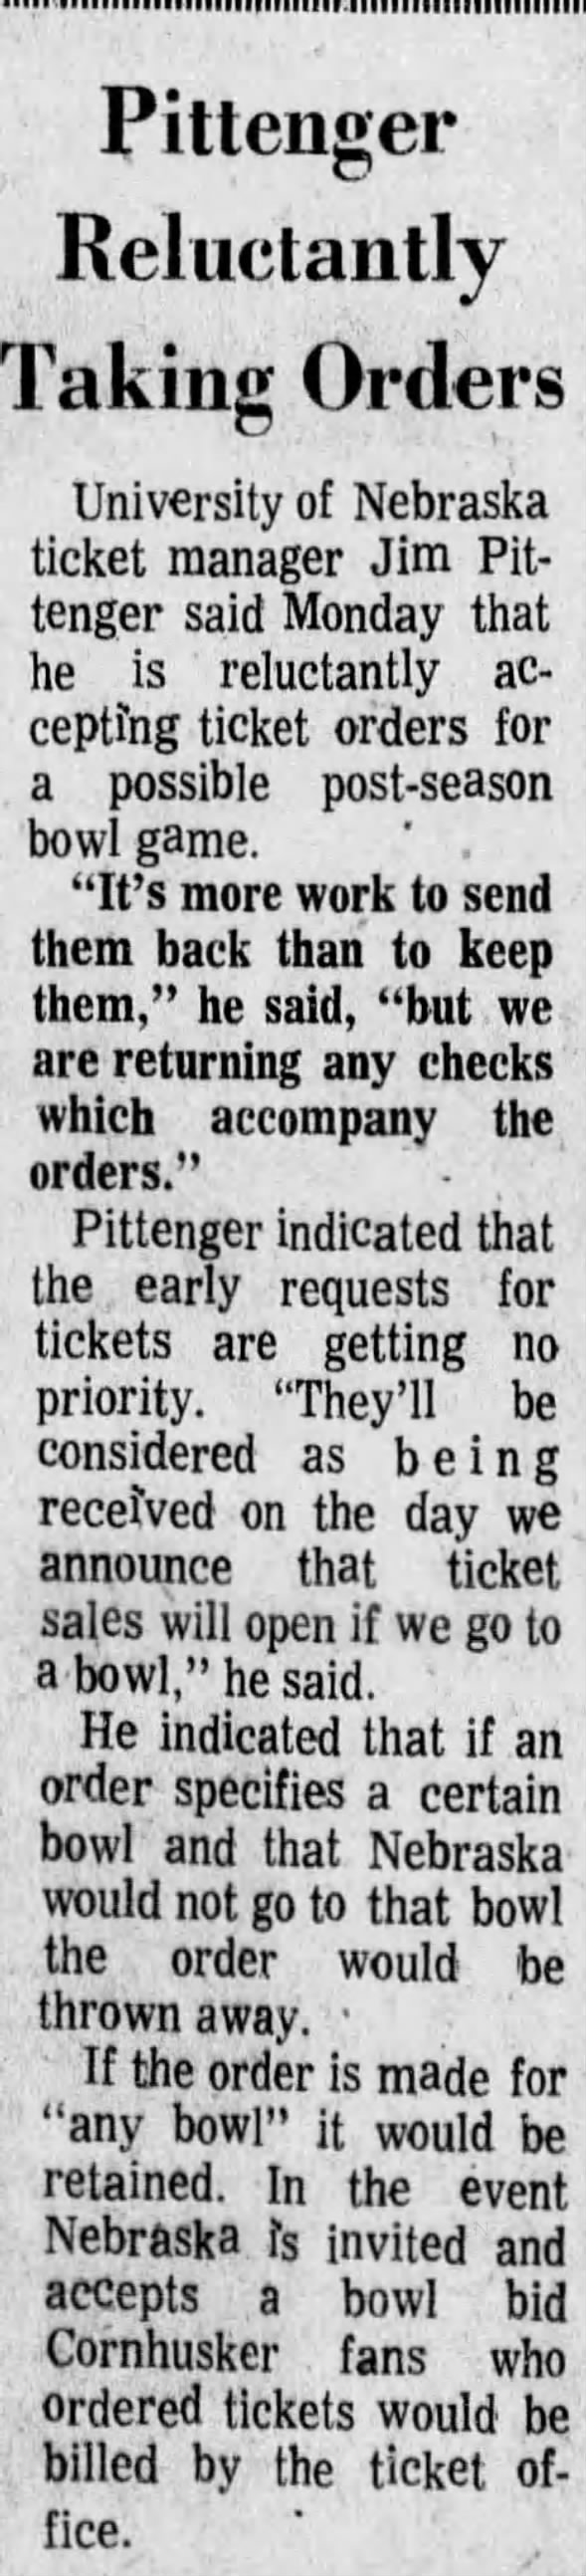 1970.11.02 Bowl ticket requests